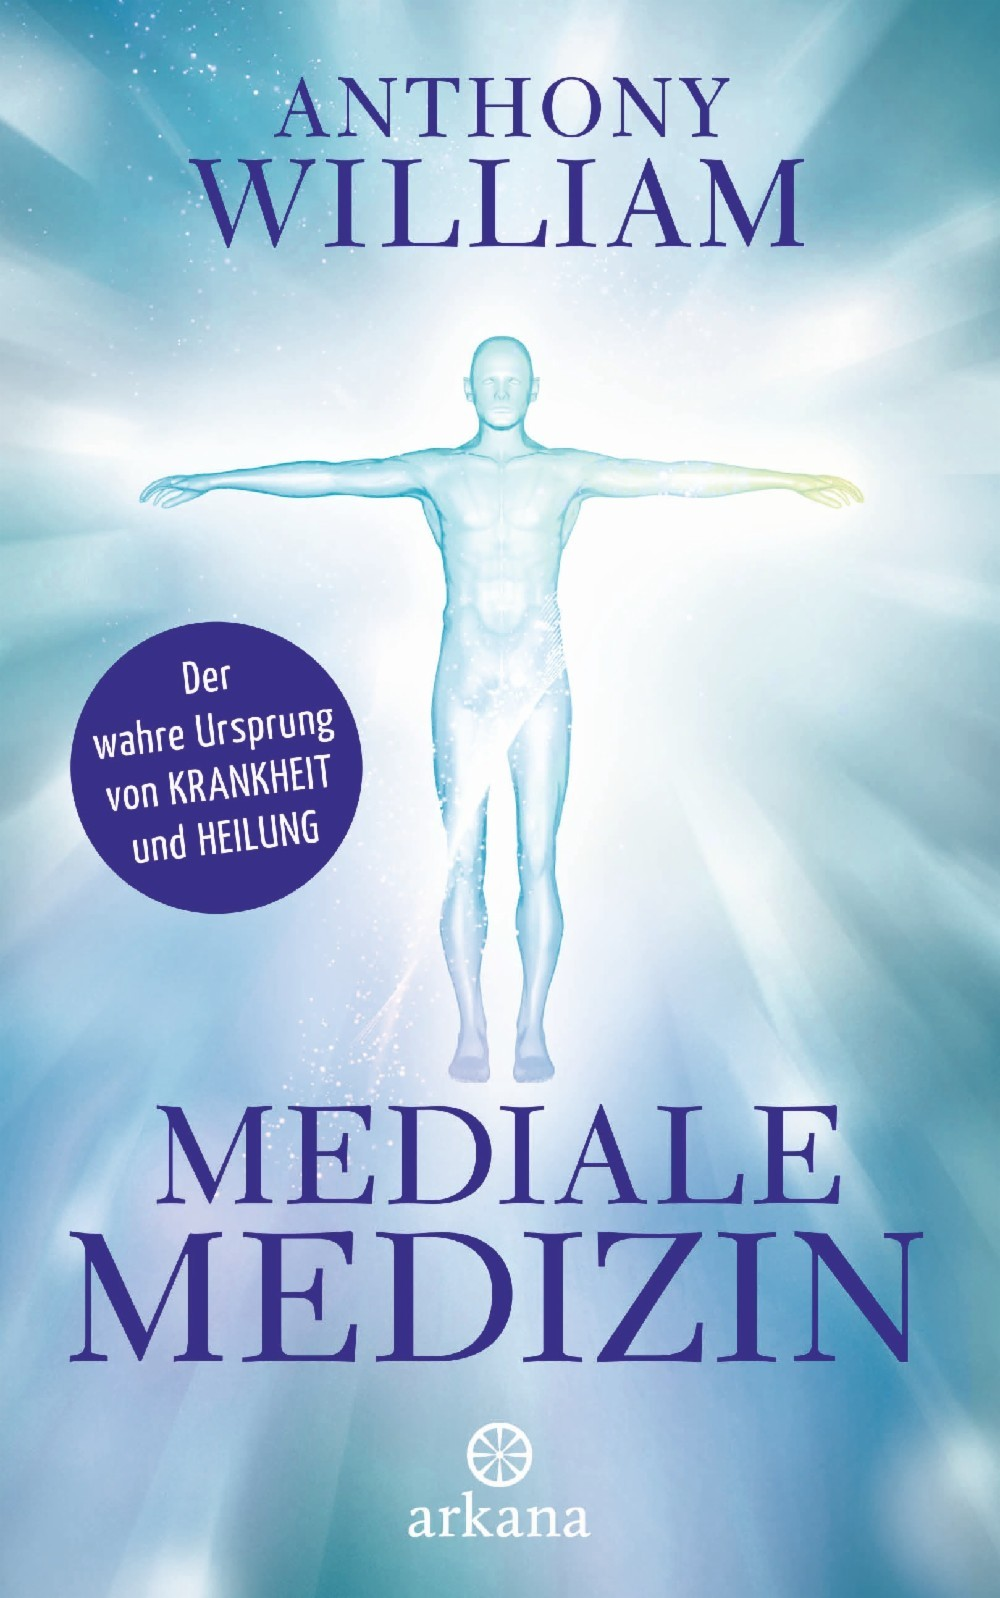 Mediale Medizin Anthony William Hardcover NEU